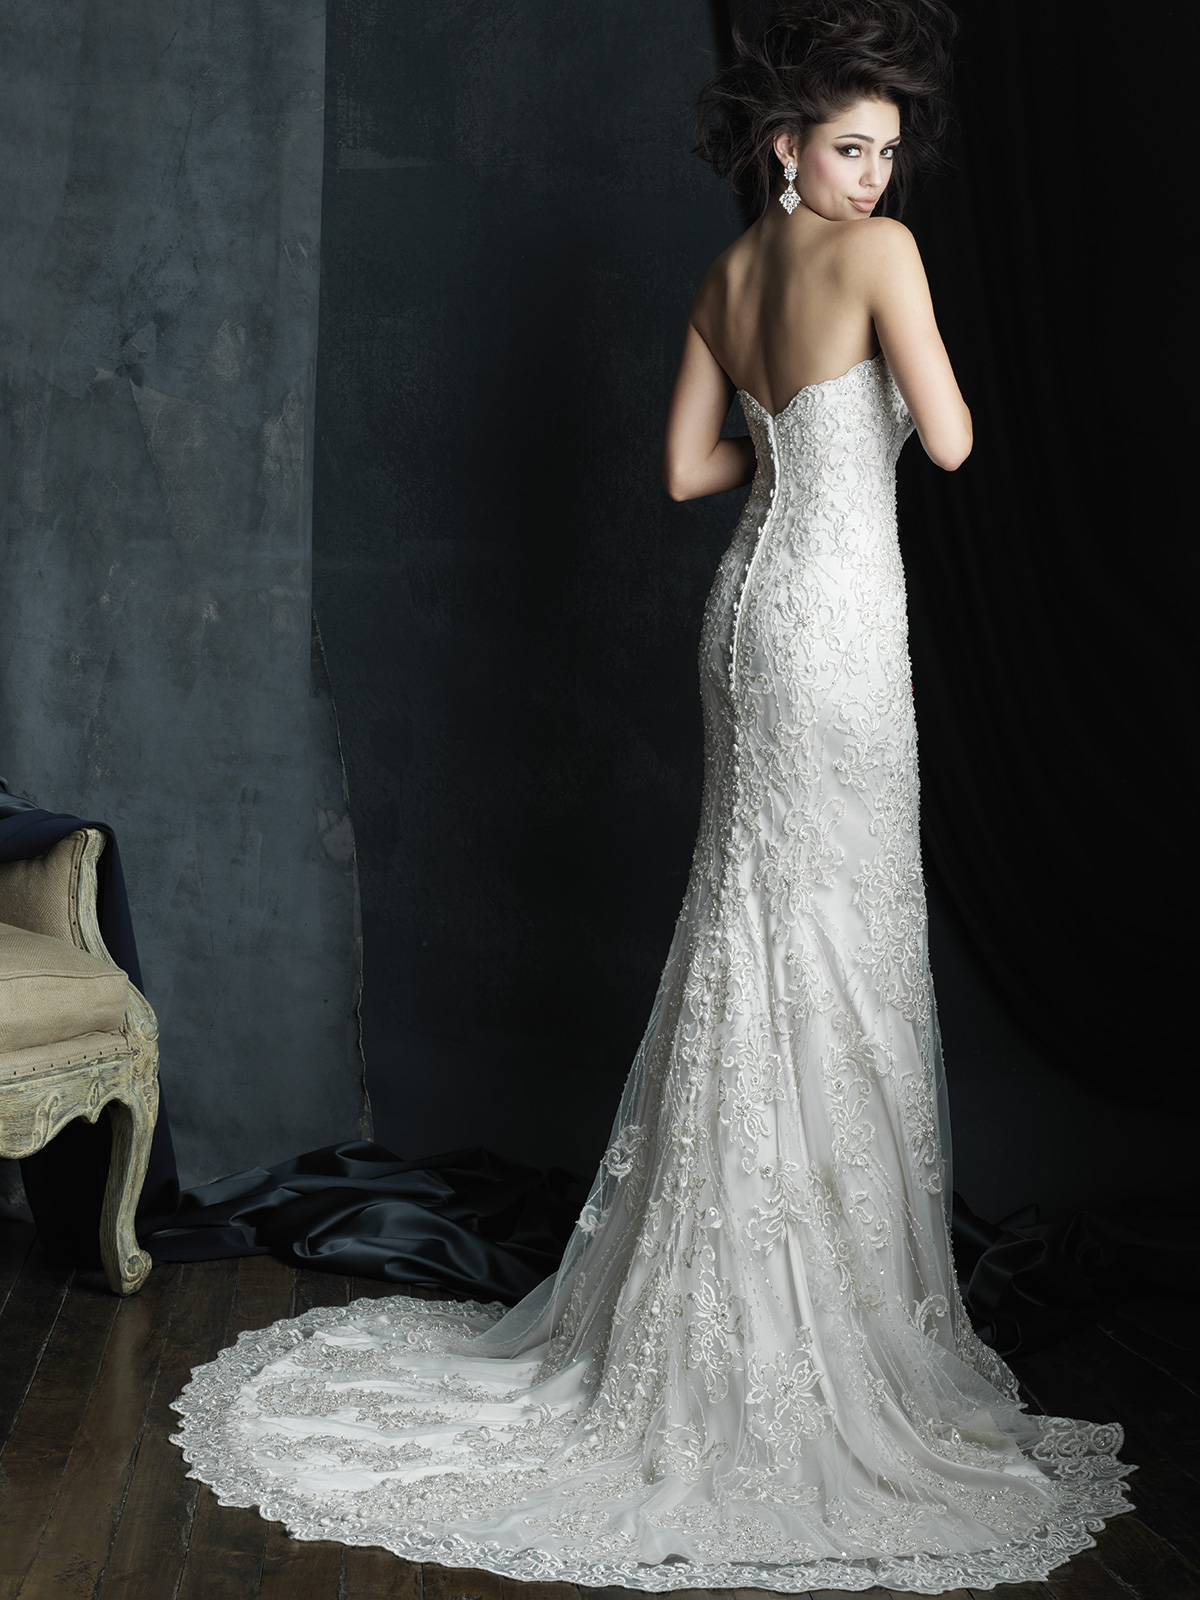 Allure Bridals Couture C383 Sweetheart Wedding Dress|DimitraDesigns.com